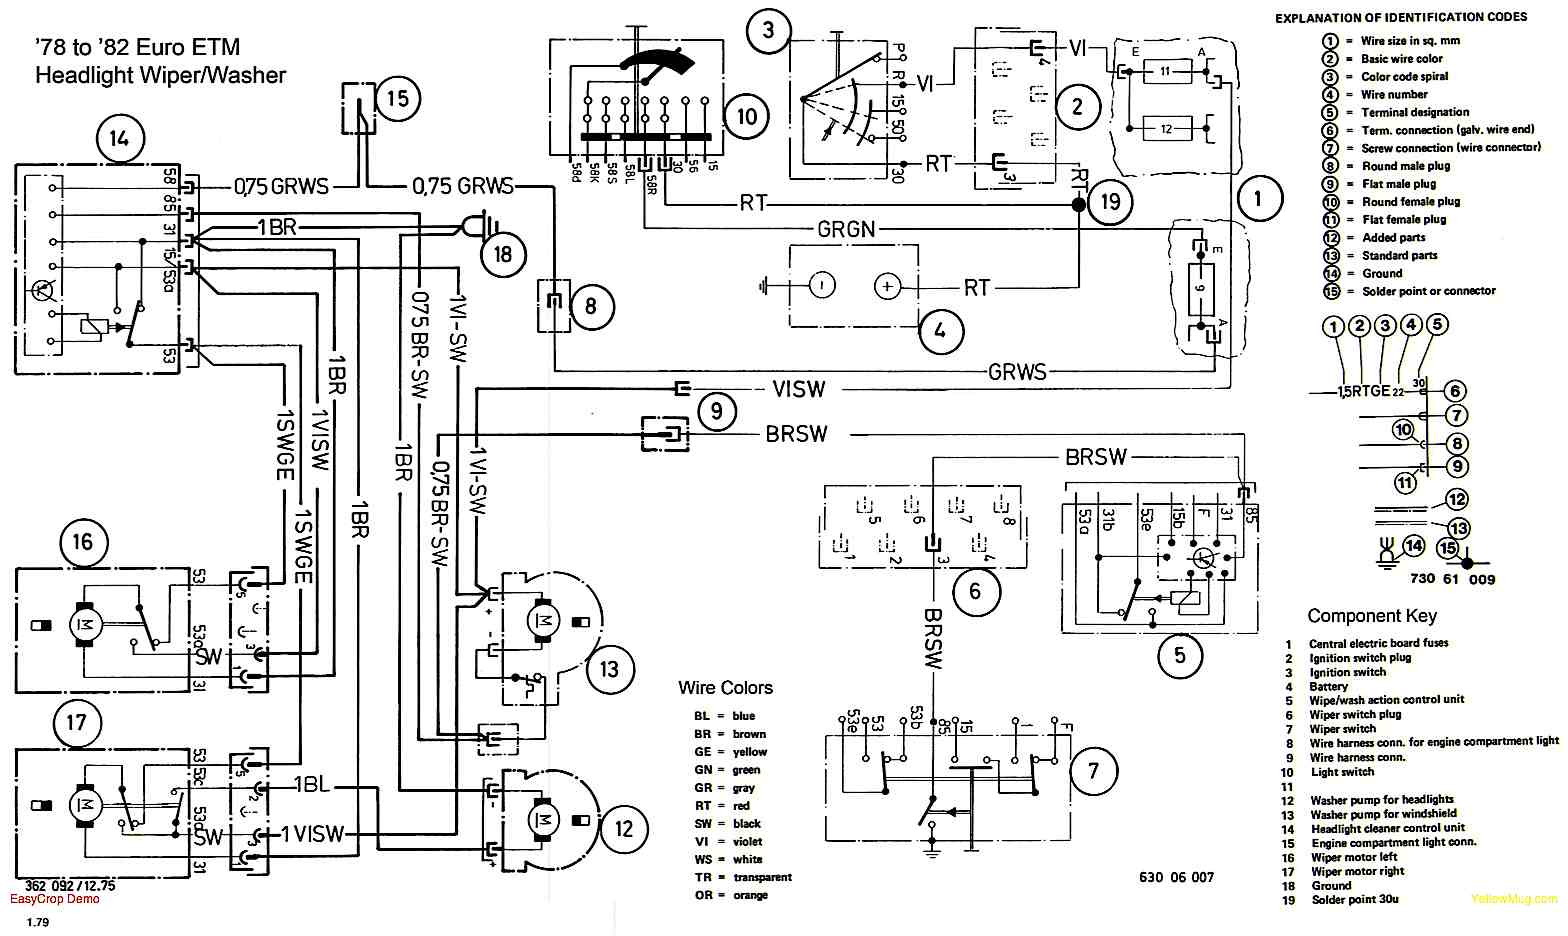 Bmw S1000rr Fuse Box Diagram in addition 2003 Bmw 525i Fuse Box Location likewise 52fbx Bmw A1987 Bmw 325i No Power Fuse 11 Fuel together with 2004 also Bmw 316i Belt Diagram. on bmw e60 fuse box diagram